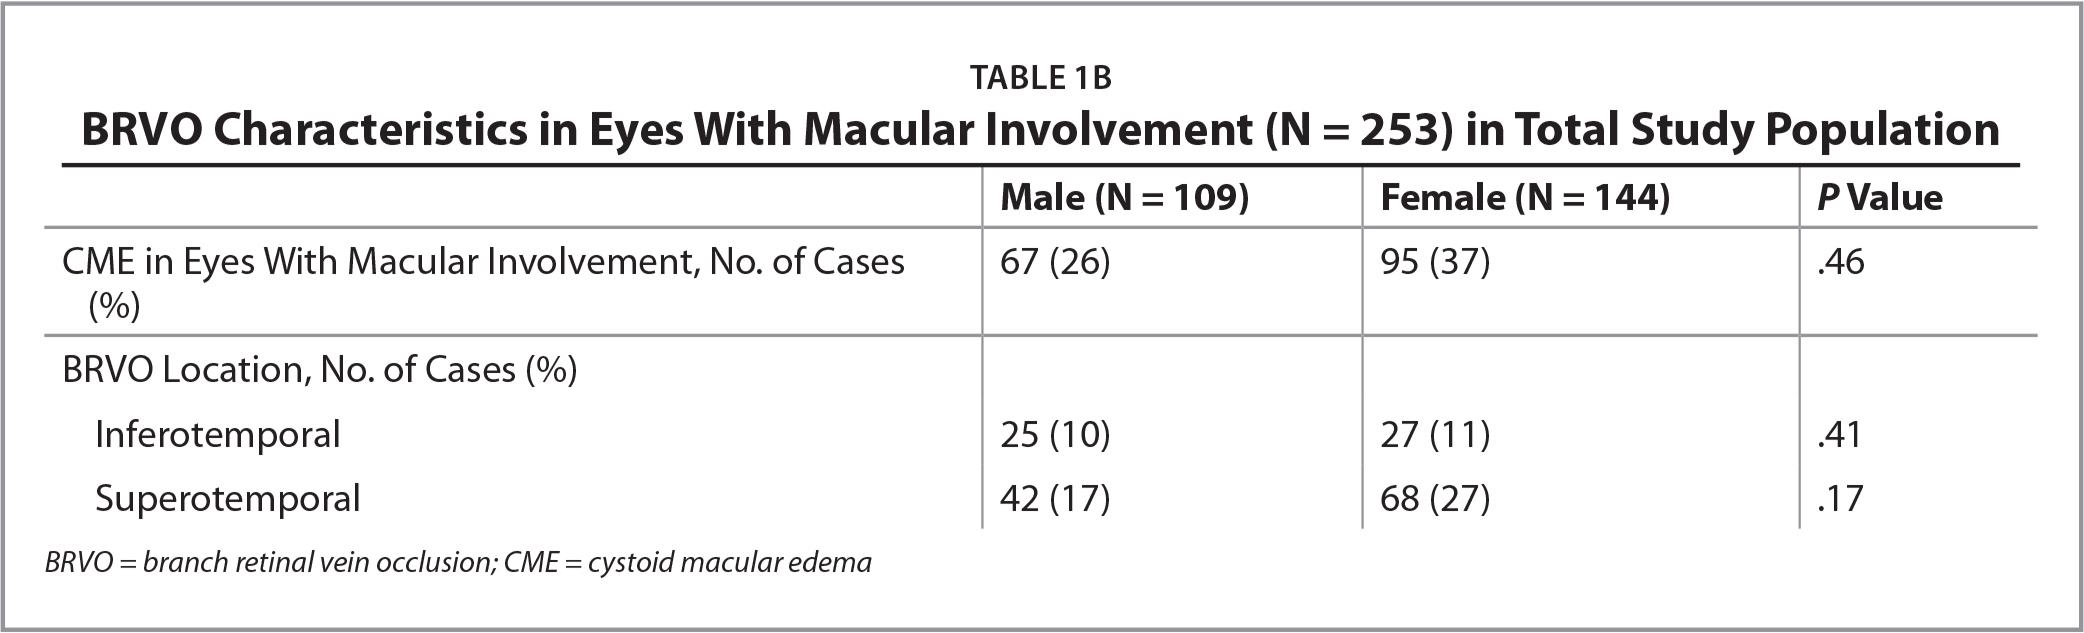 BRVO Characteristics in Eyes With Macular Involvement (N = 253) in Total Study Population